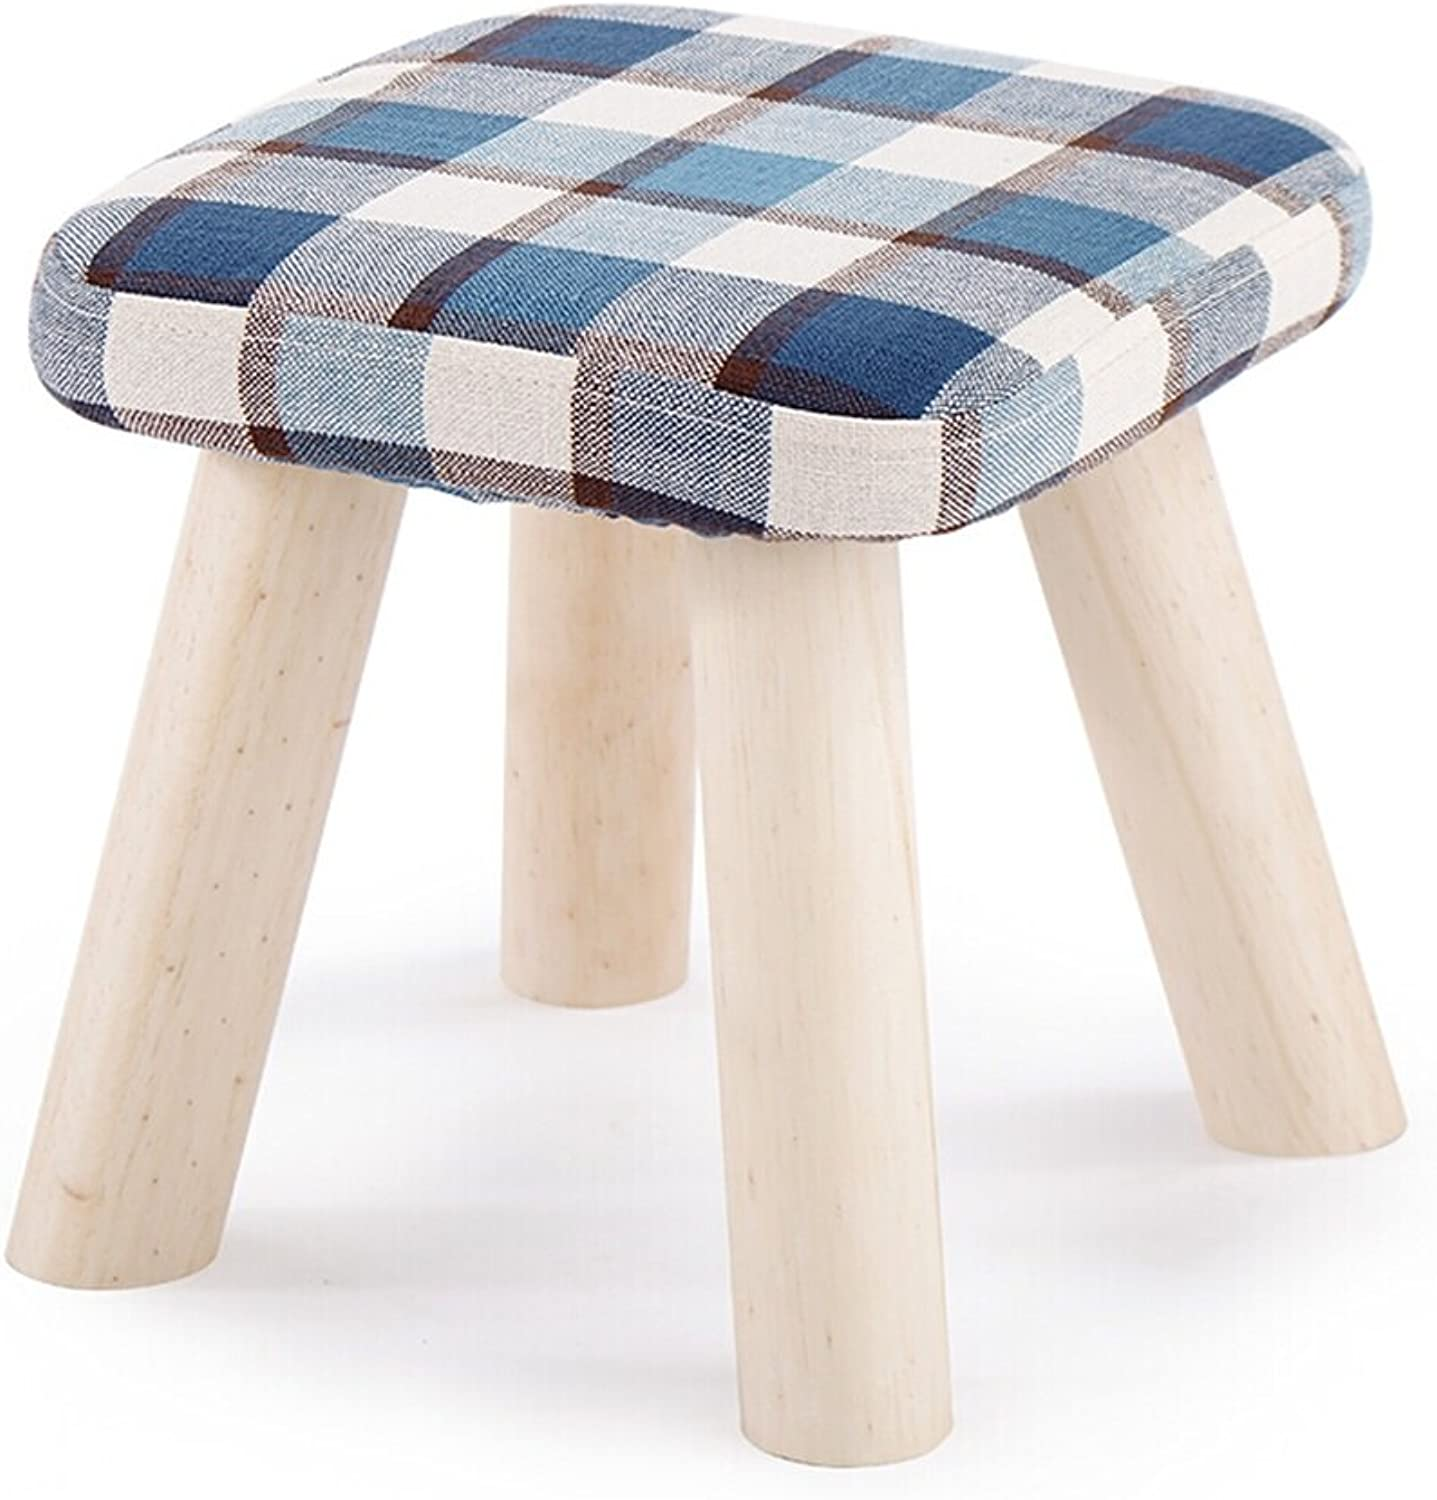 Low Stool Four-Legged Multifunctional Footstool Fabric Sofa Stylish Creative shoes Bench Chair Bench Solid Wood Bedside (color   bluee)